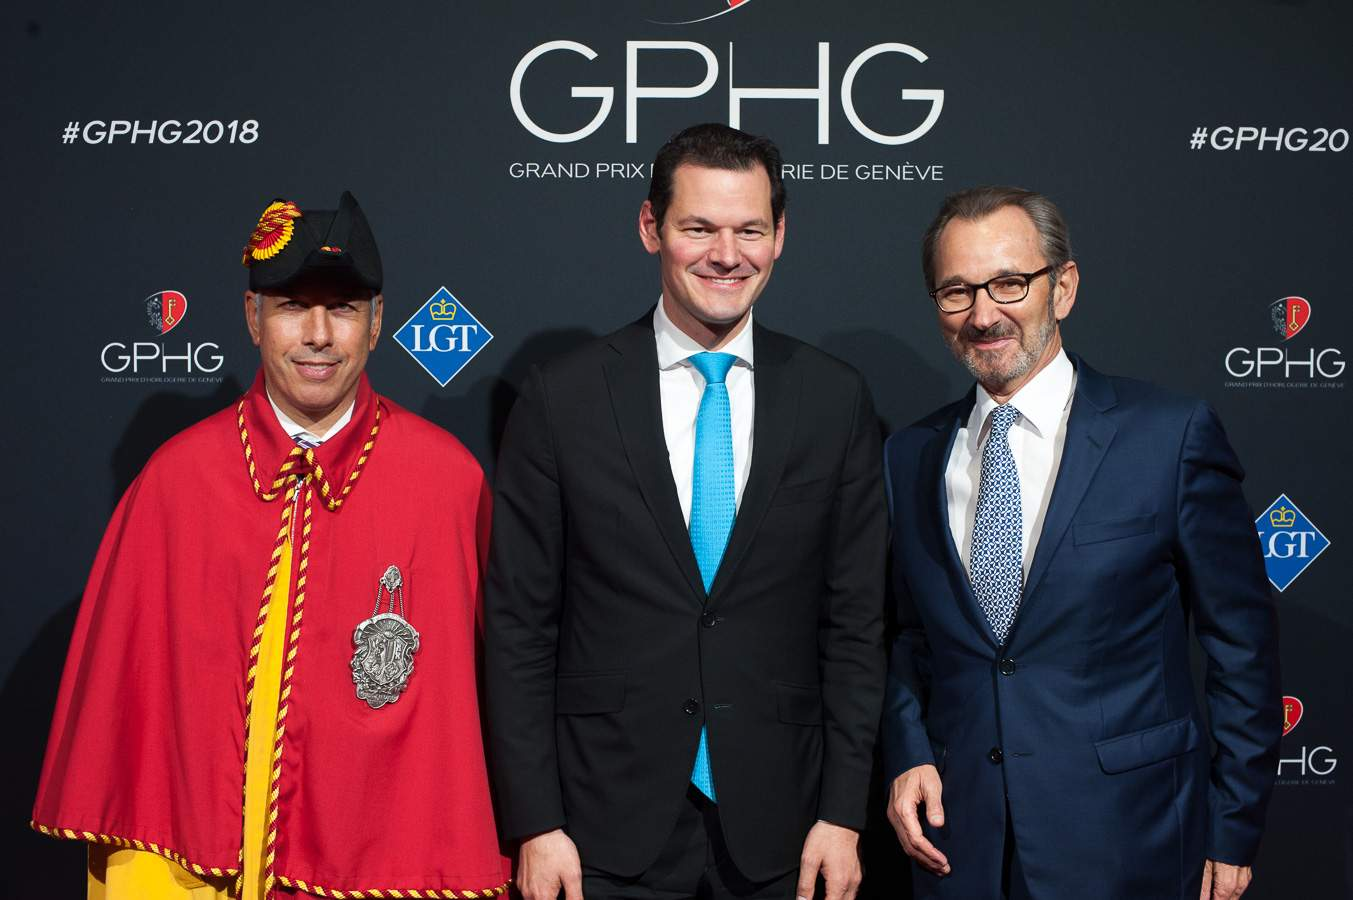 Pierre Maudet, Geneva State Concillor and Raymond Loretan, president of the GPHG Foundation